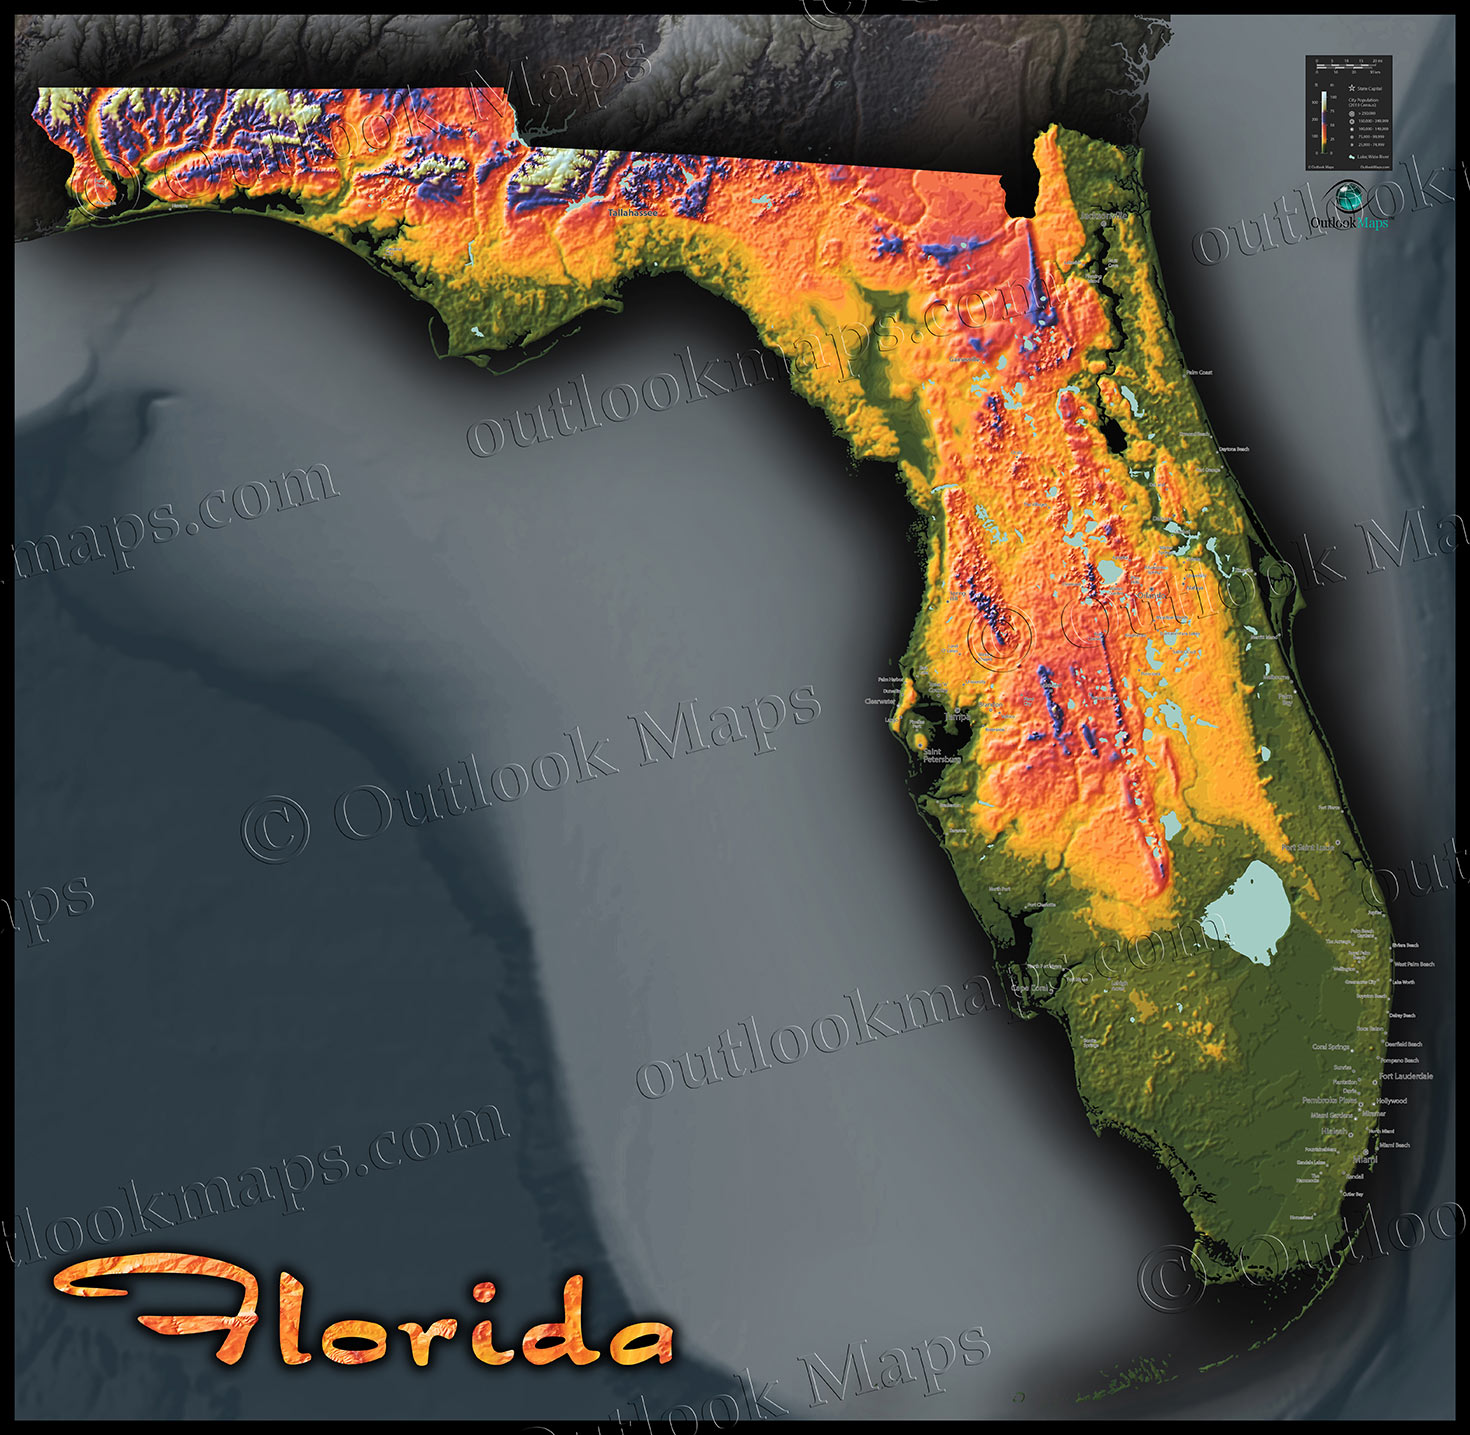 Florida Topography Map | Colorful Natural Physical Landscape